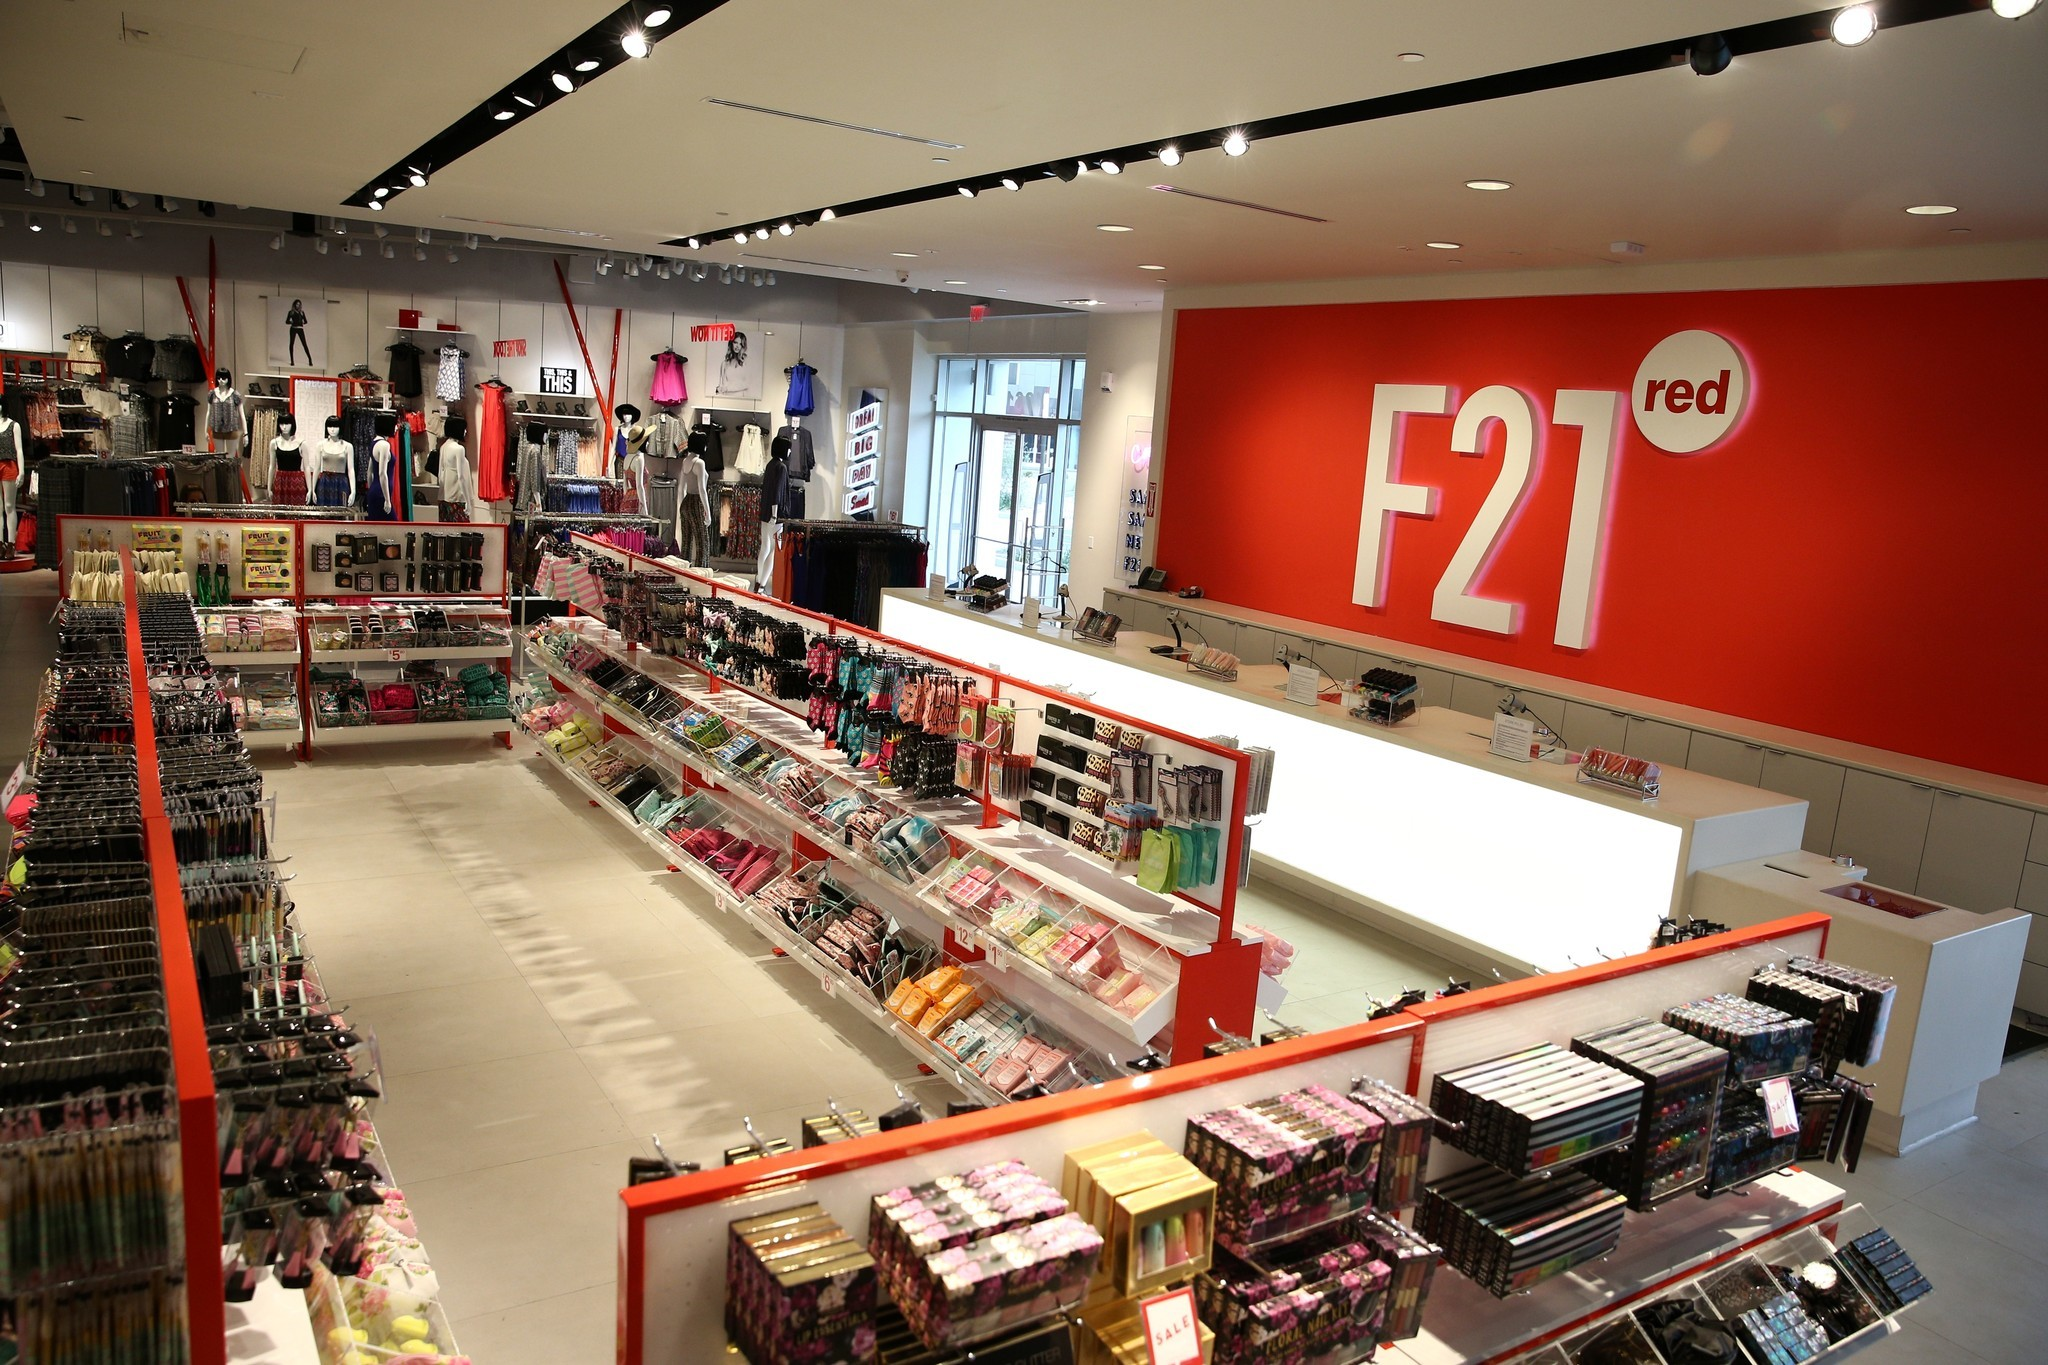 Forever 21 Bringing Deeper Discount F21 Red To Winter Garden Orlando Sentinel